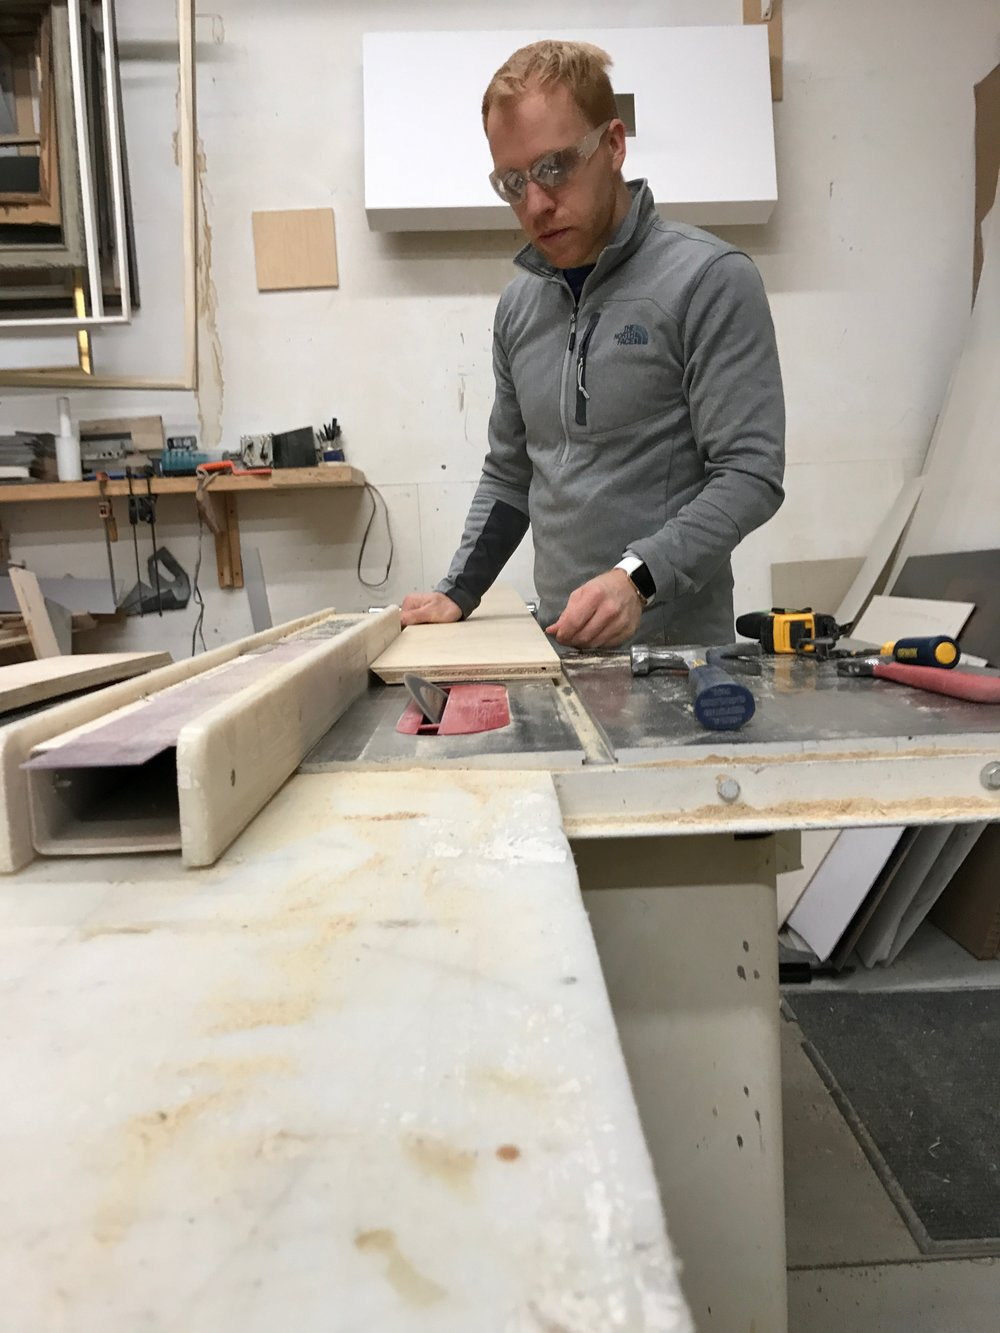 Wayne cuts angled trim boards for the control room interior.